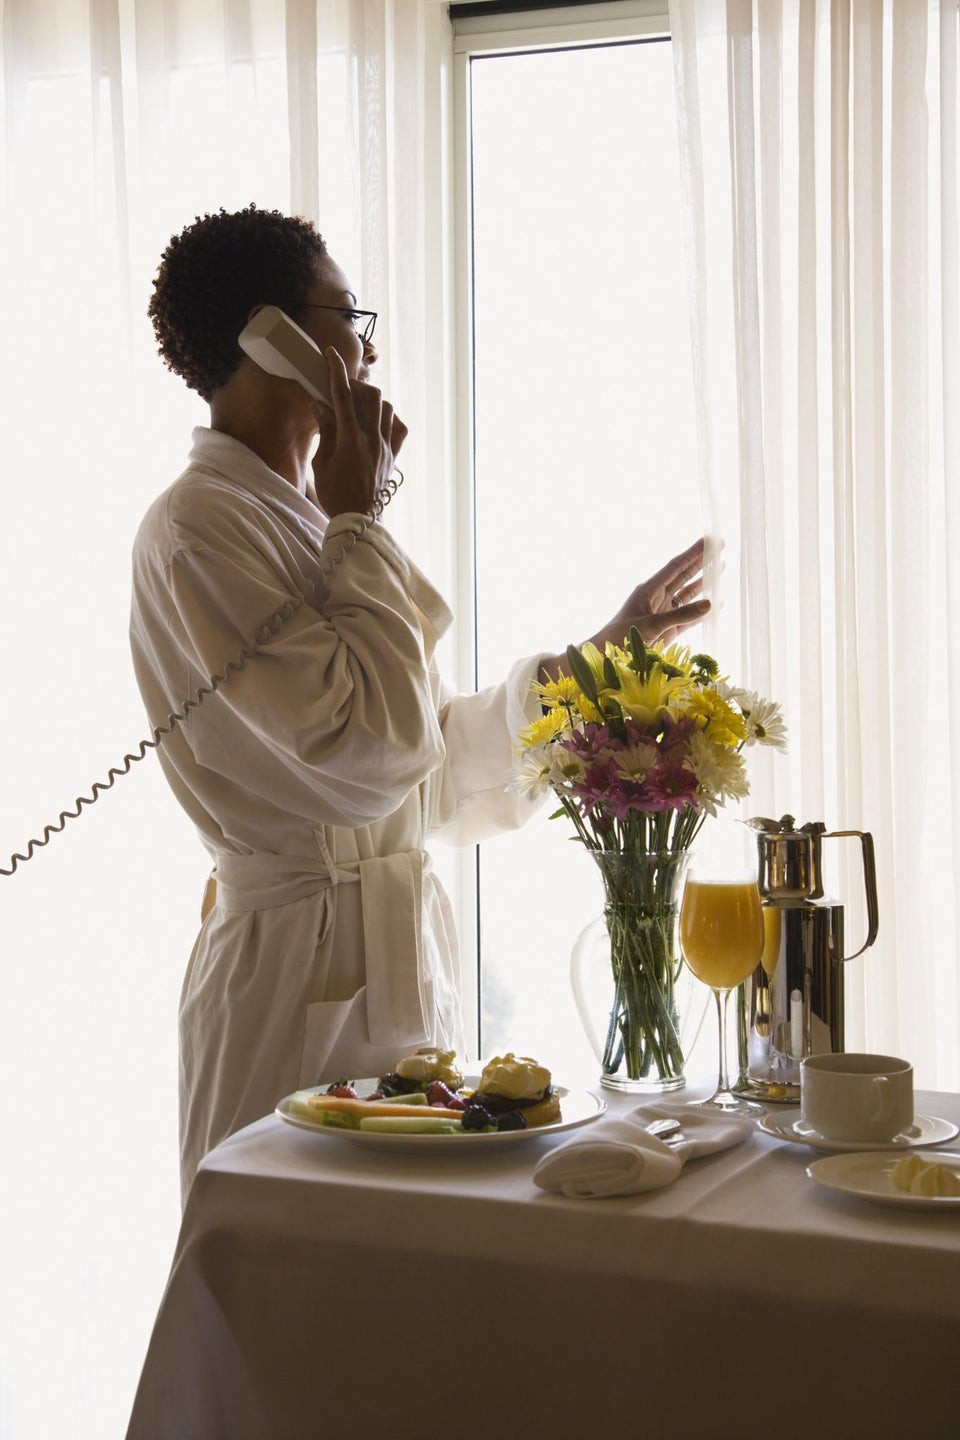 Insider Secrets to Help You Upgrade Your Next Hotel Stay